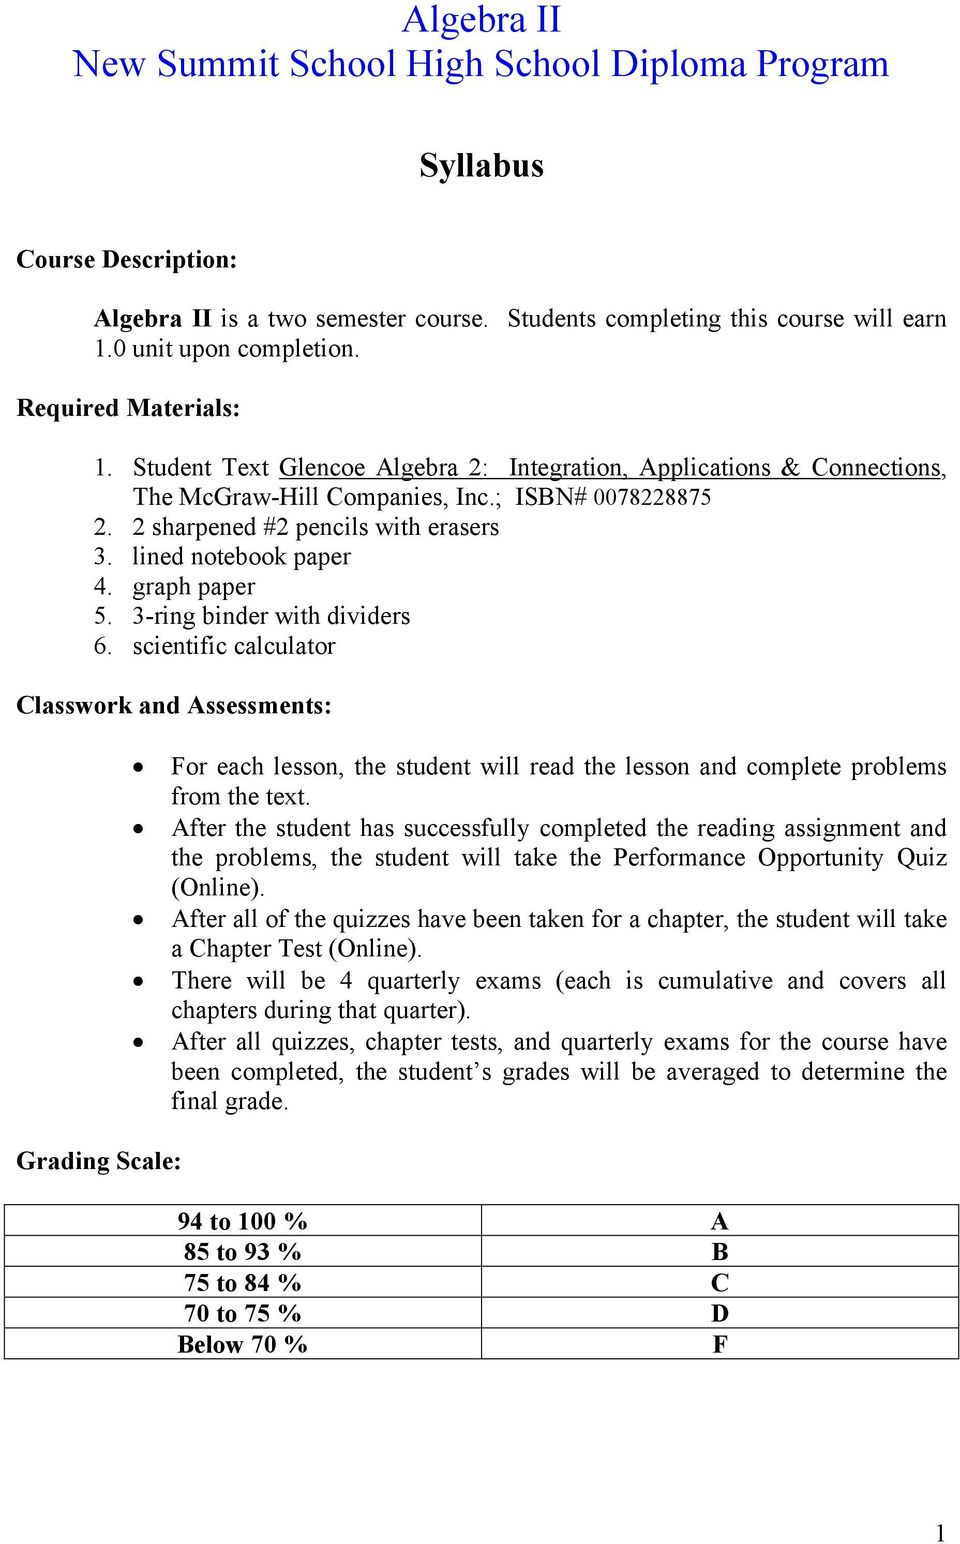 graph paper 5. 3-ring binder with dividers 6. scientific calculator Classwork and Assessments: Grading Scale: For each lesson, the student will read the lesson and complete problems from the text.